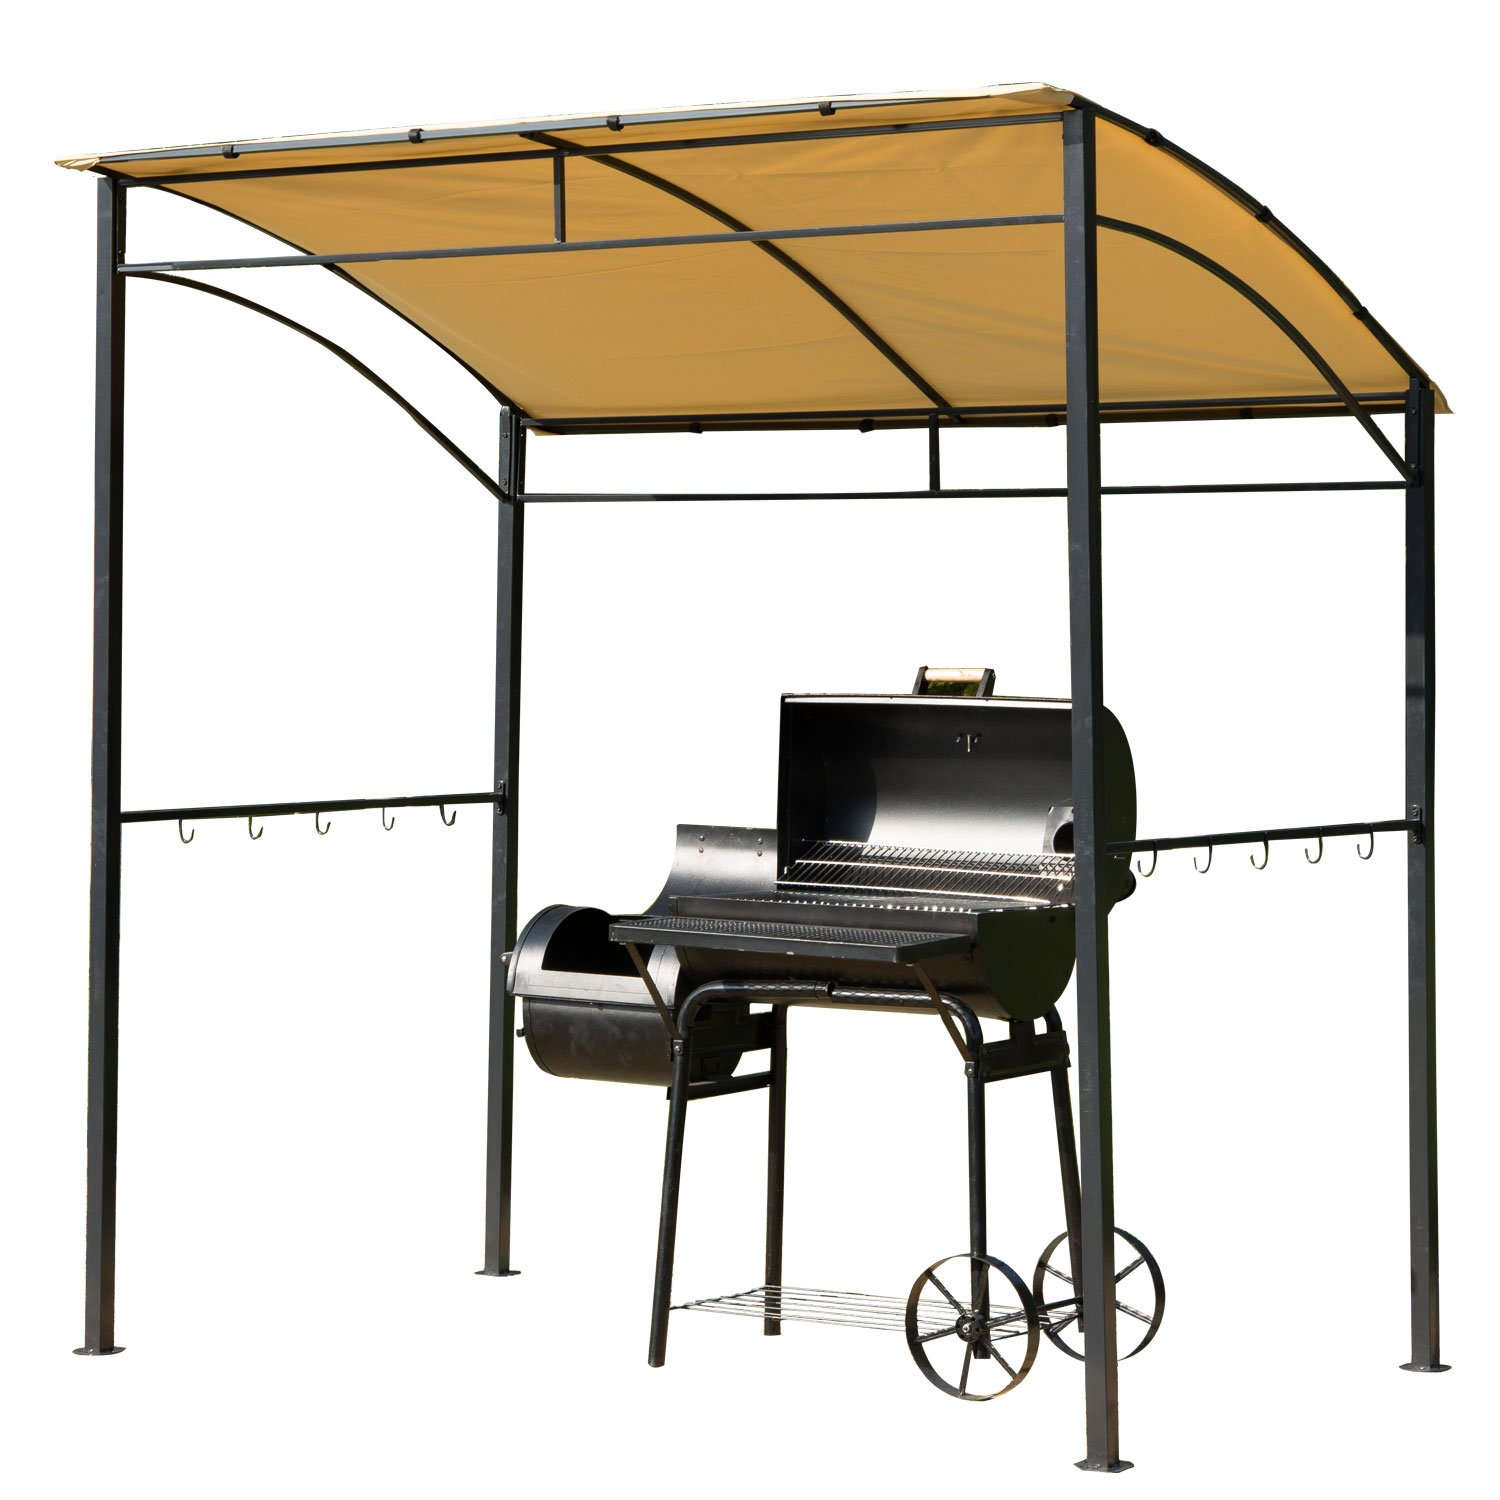 Amazon.com  Outsunny BBQ Grill Canopy Steel Frame Shelter Brown  Outdoor Canopies  Garden u0026 Outdoor  sc 1 st  Amazon.com : bbq canopy - memphite.com